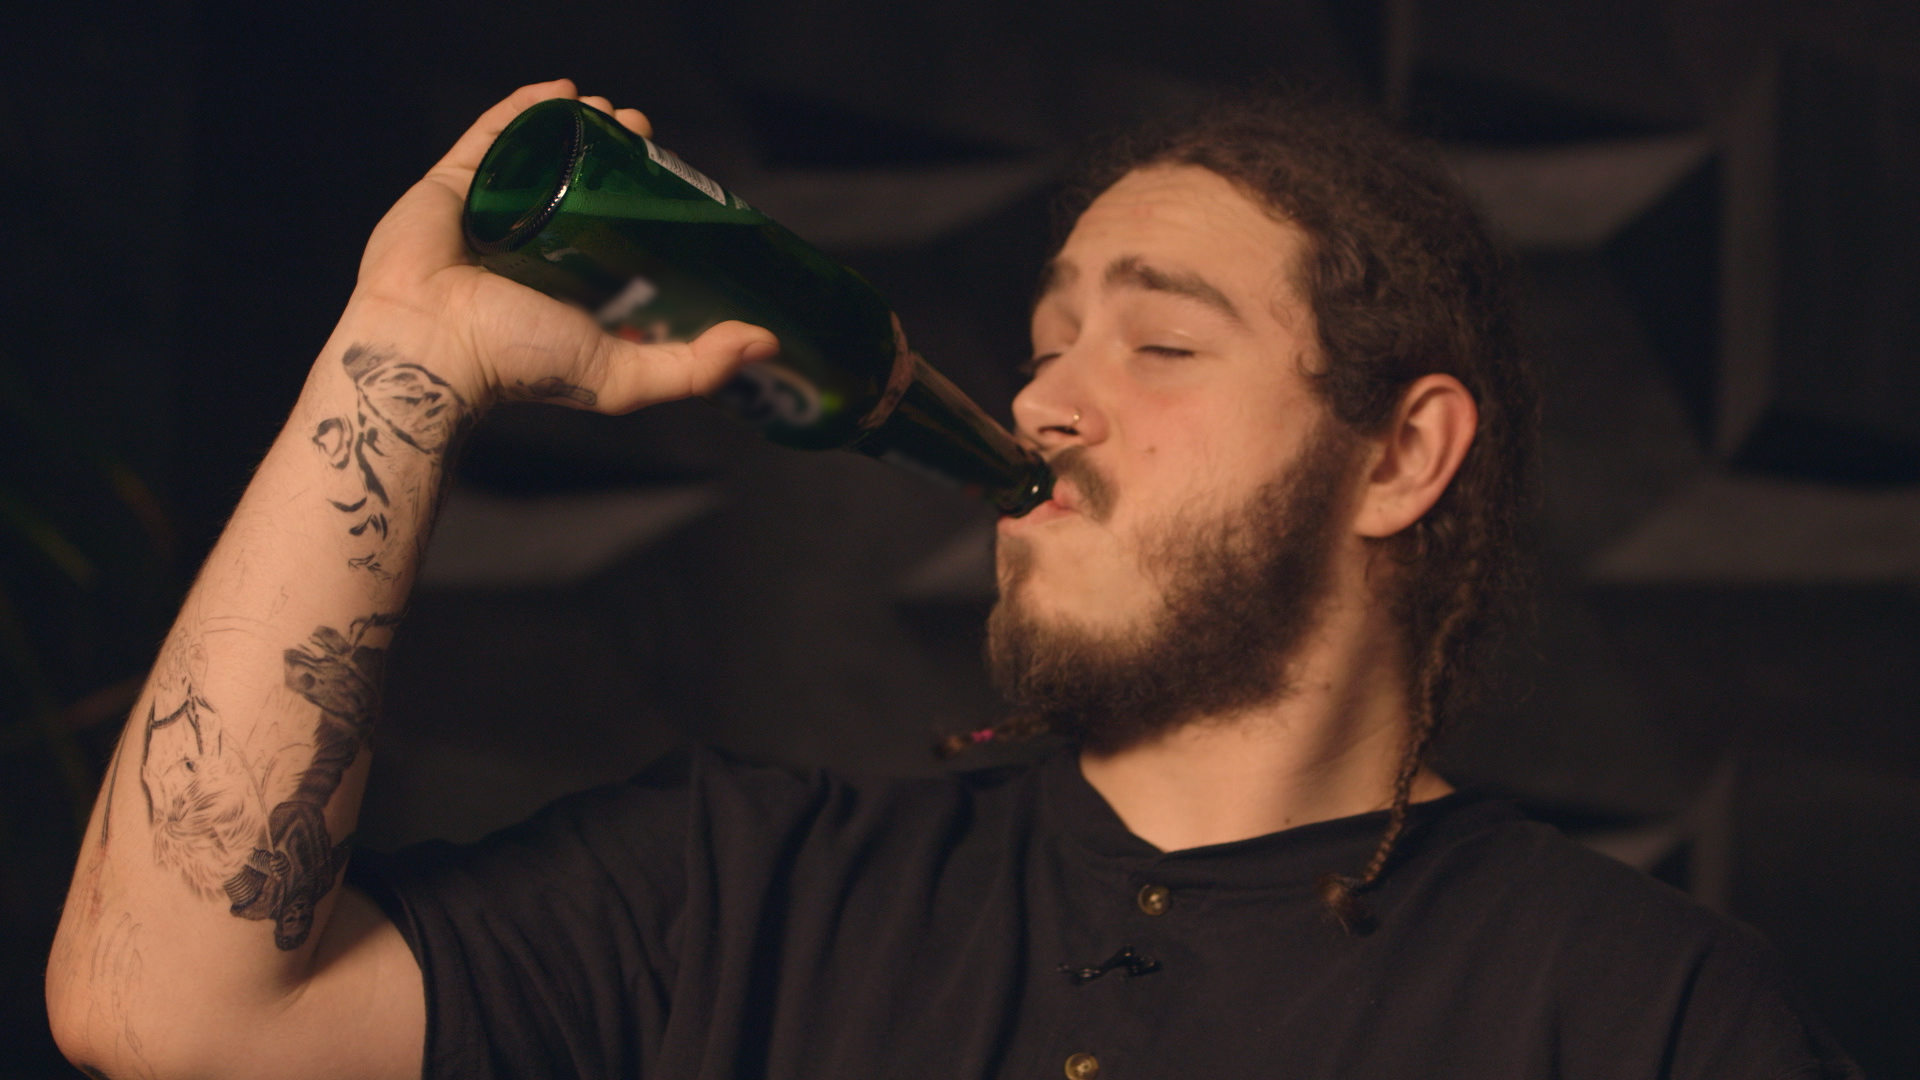 Post Malone Vice Video Documentaries Films News Videos